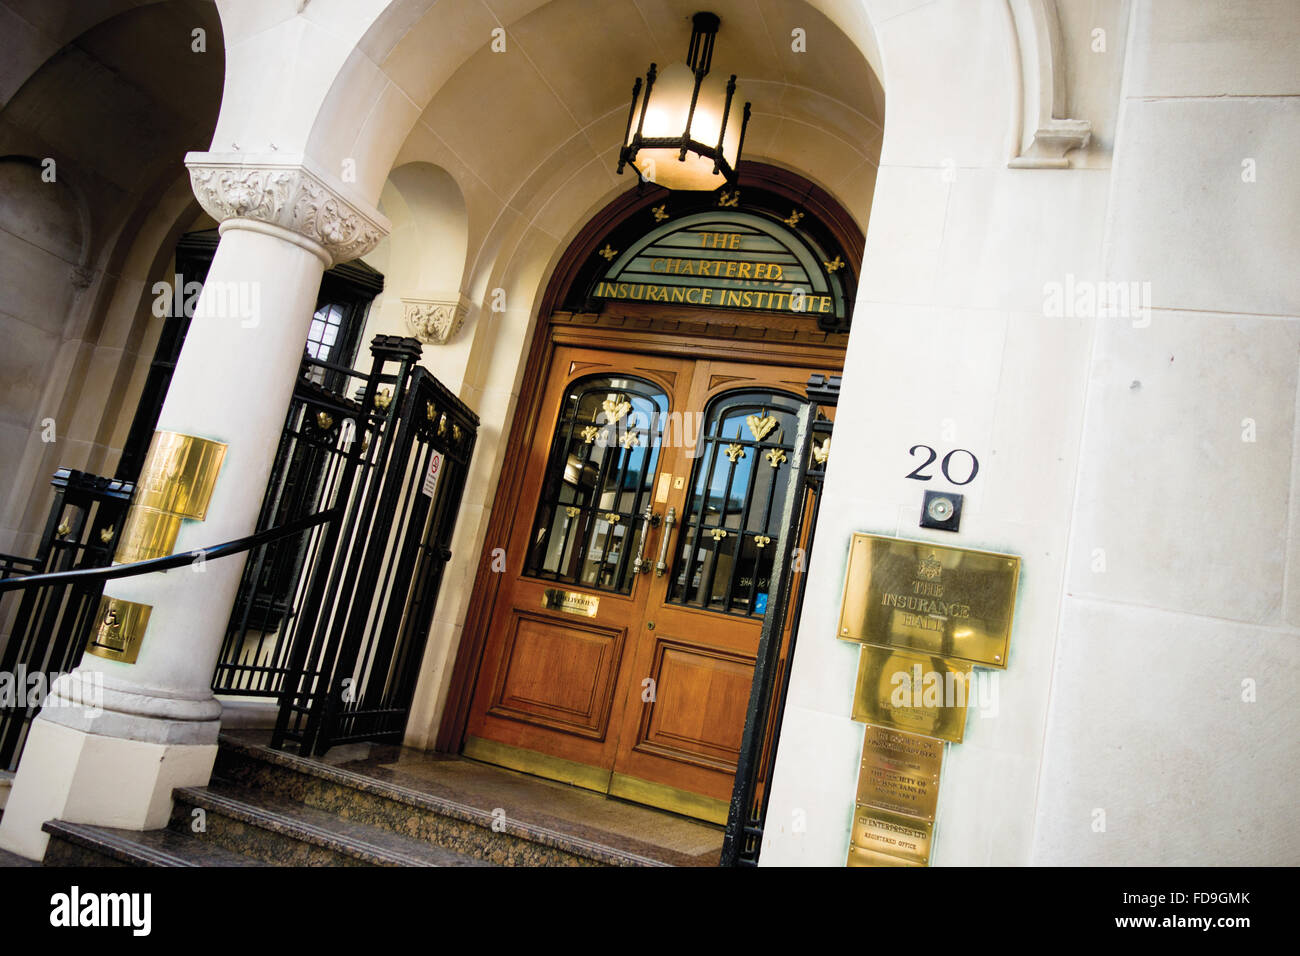 Chartered Insurance Institute building, The Insurance Hall, on Aldermanbury in the City of London - Stock Image